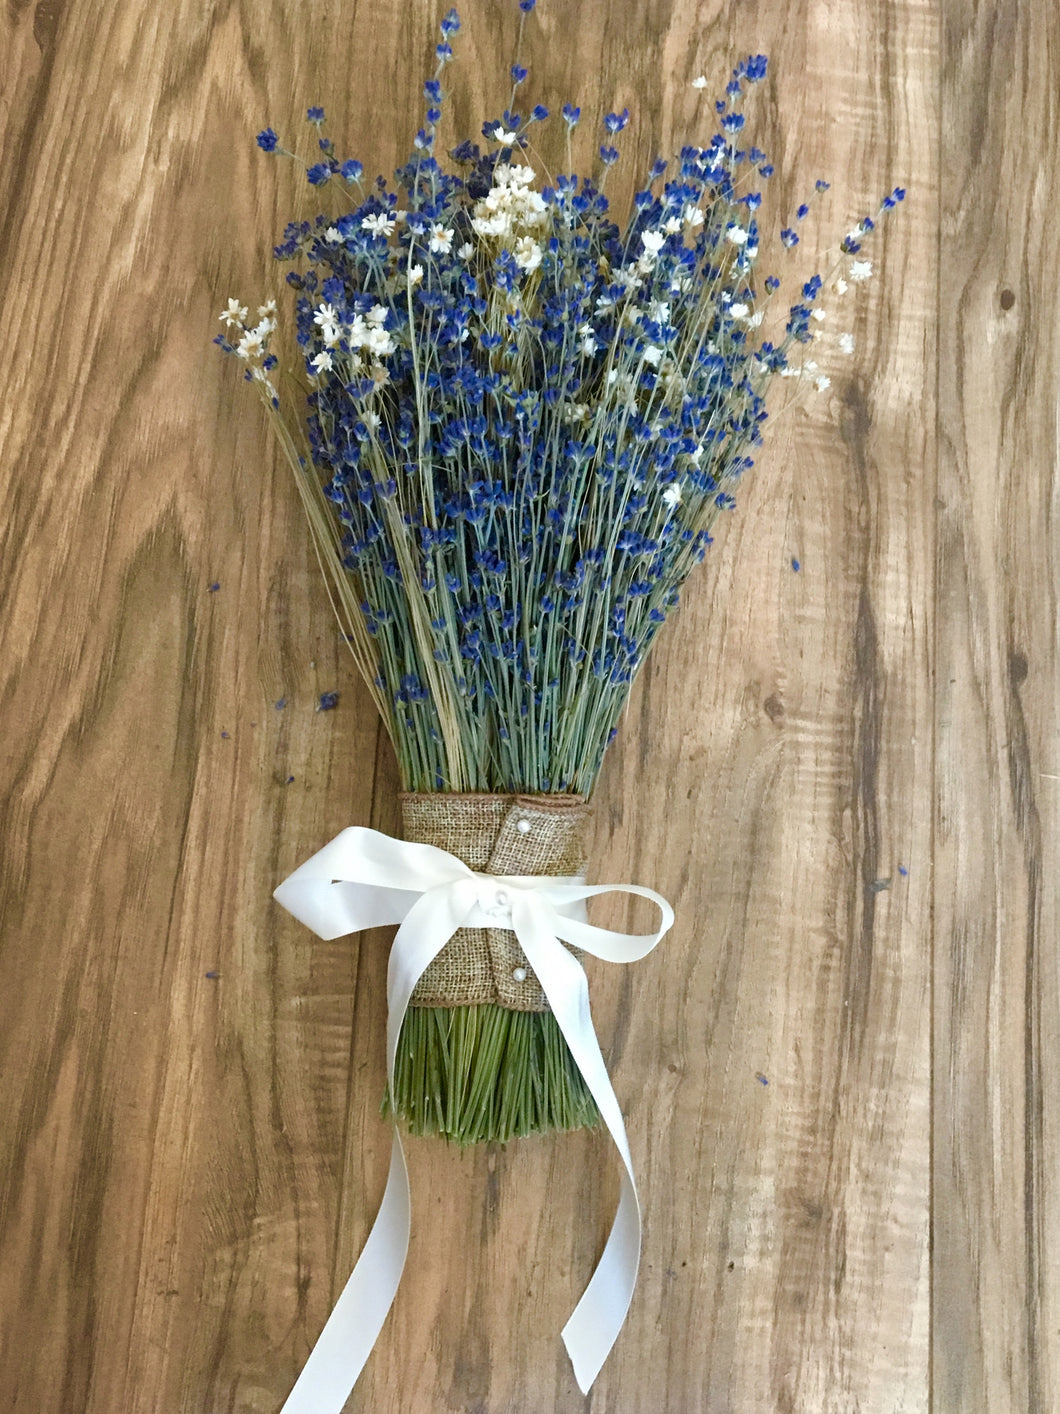 Bridal Bouquet -  Dried Lavender with Star Flowers - Deep Colors, Beautiful & Fragrant - Lavender Wedding Co